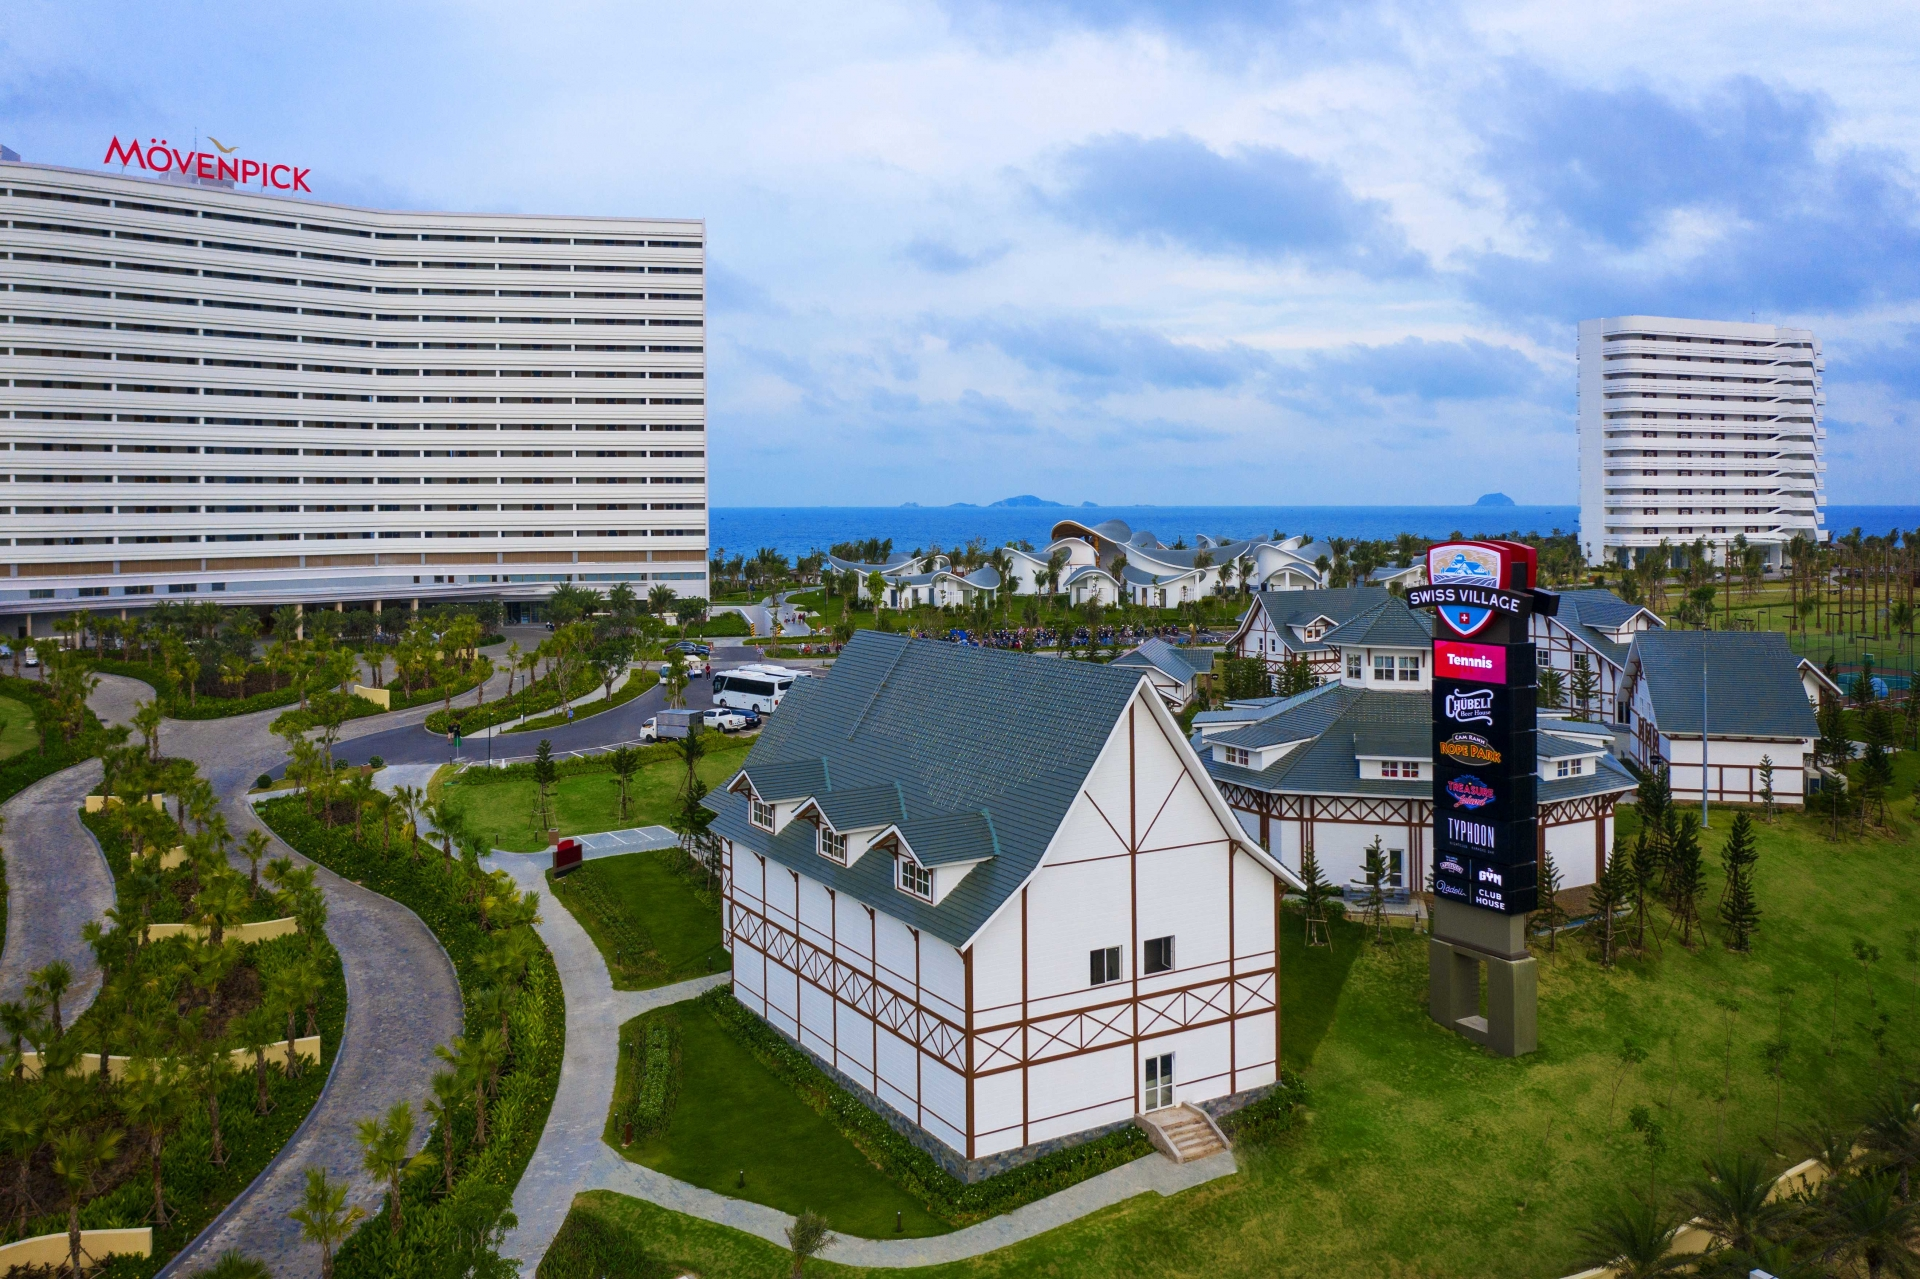 Exclusive holiday packages on offer at Mövenpick Resort Cam Ranh